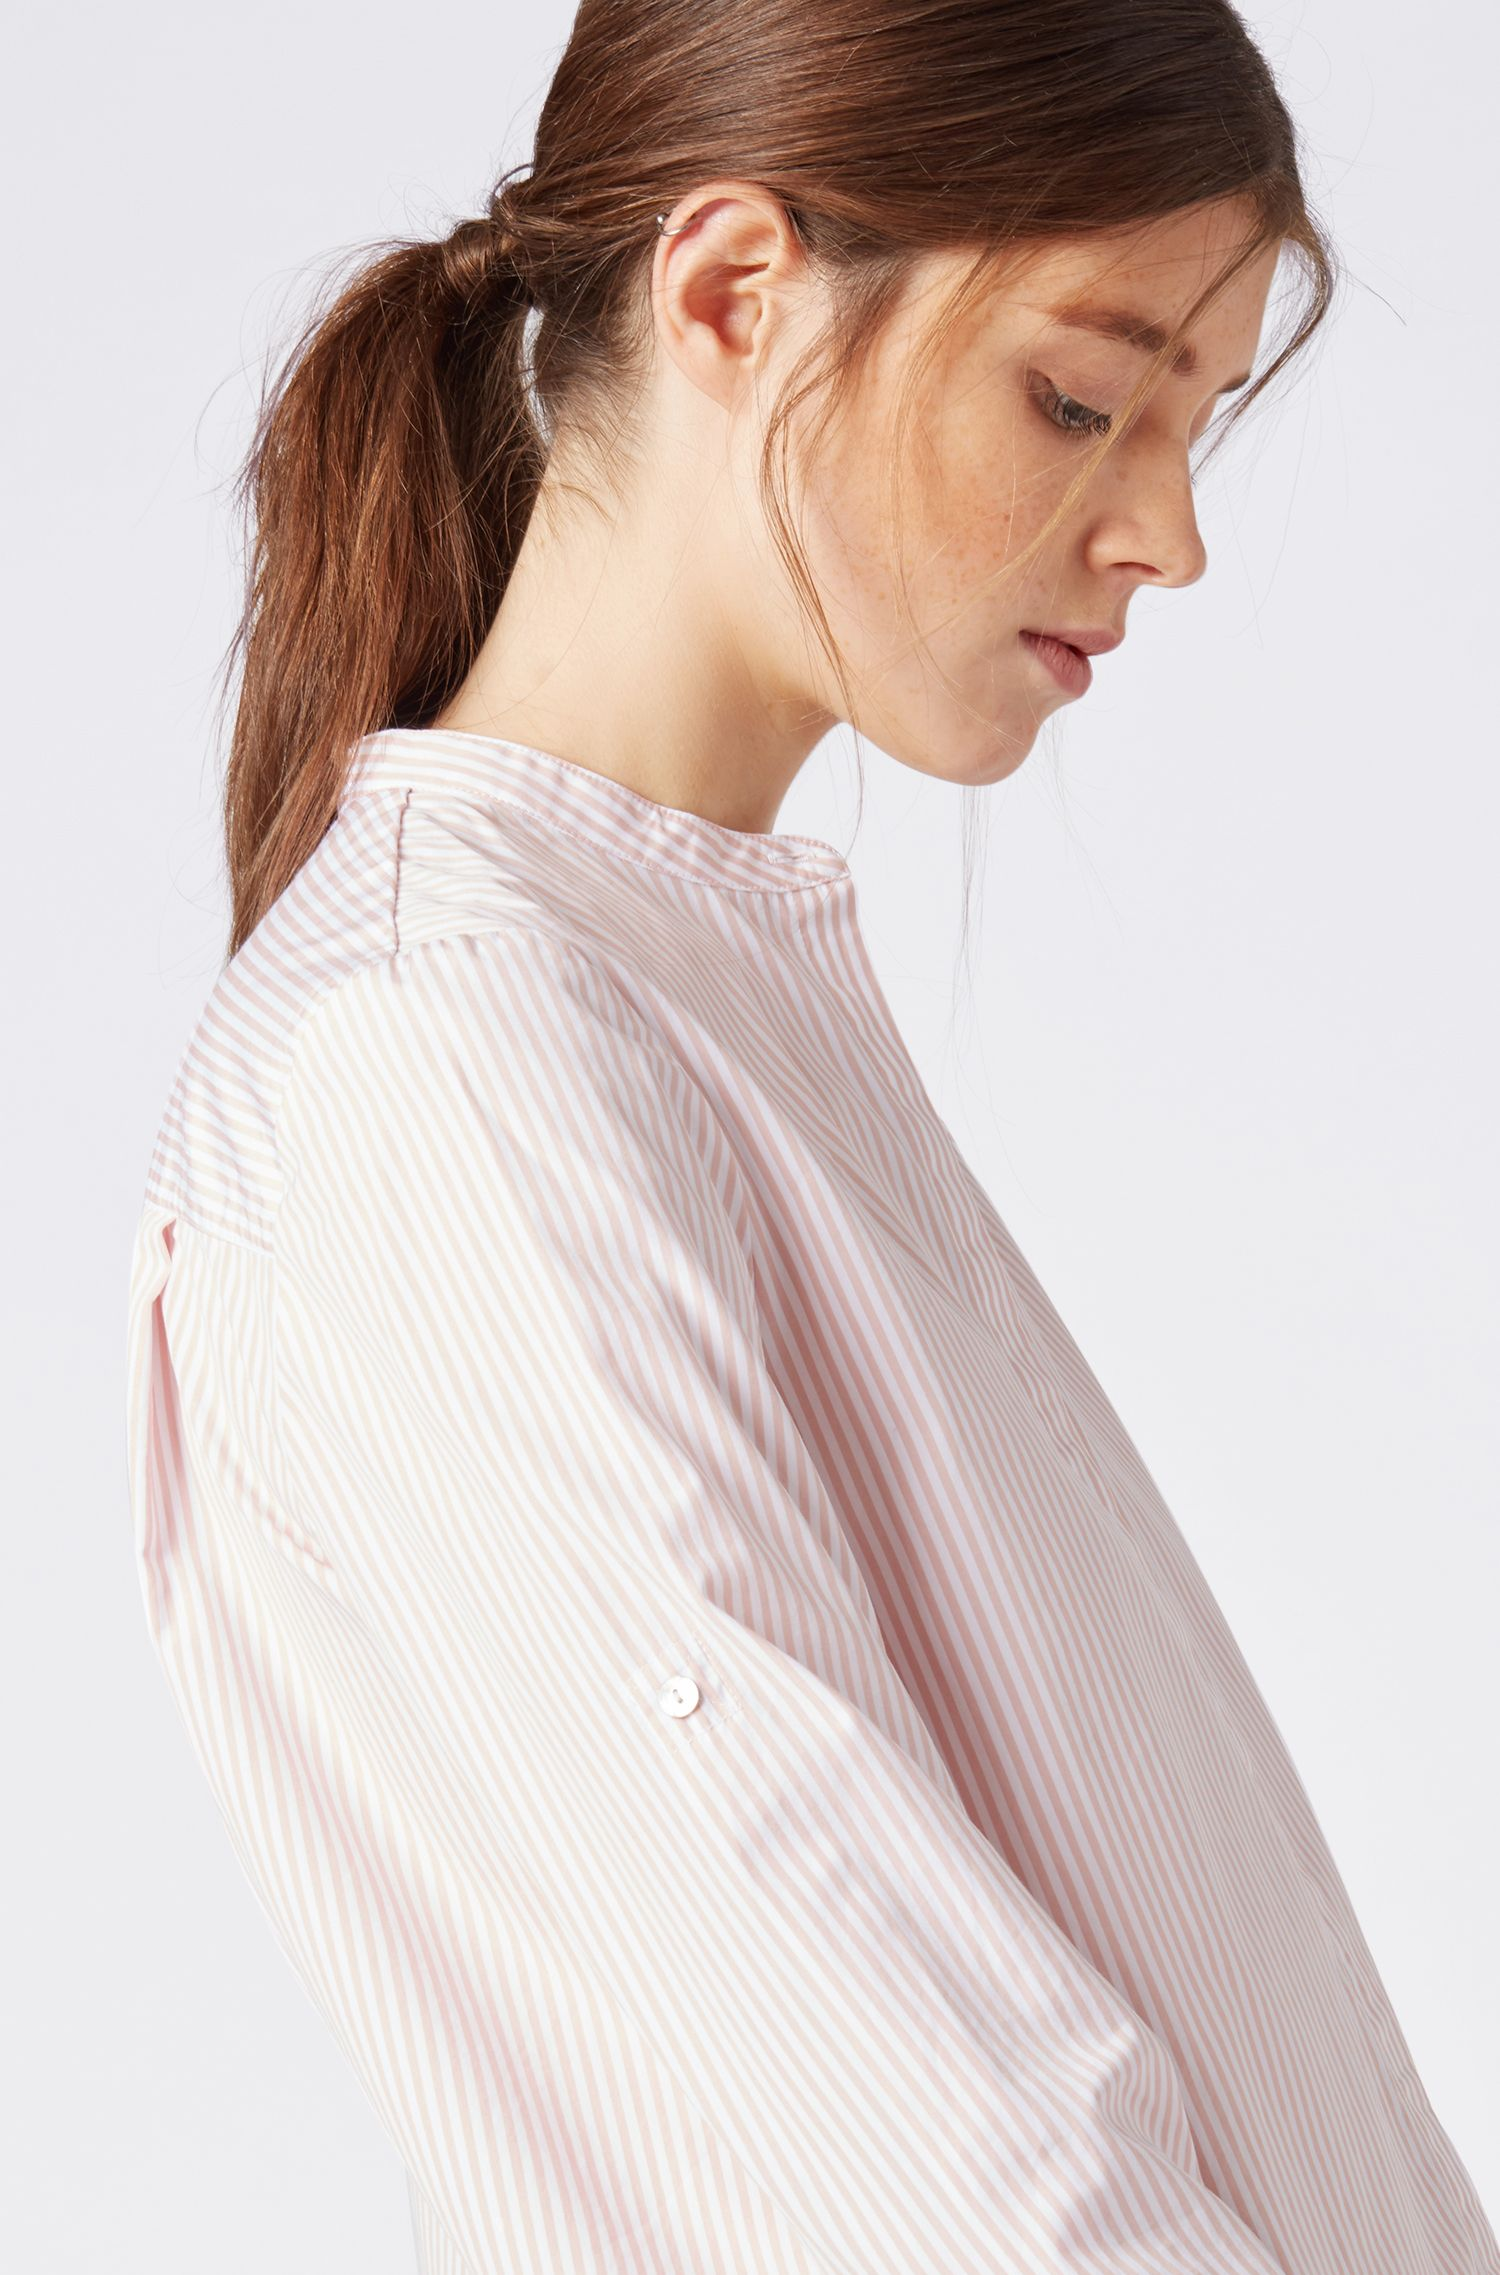 Hugo Boss - Relaxed-fit blouse in striped cotton with stand collar - 4